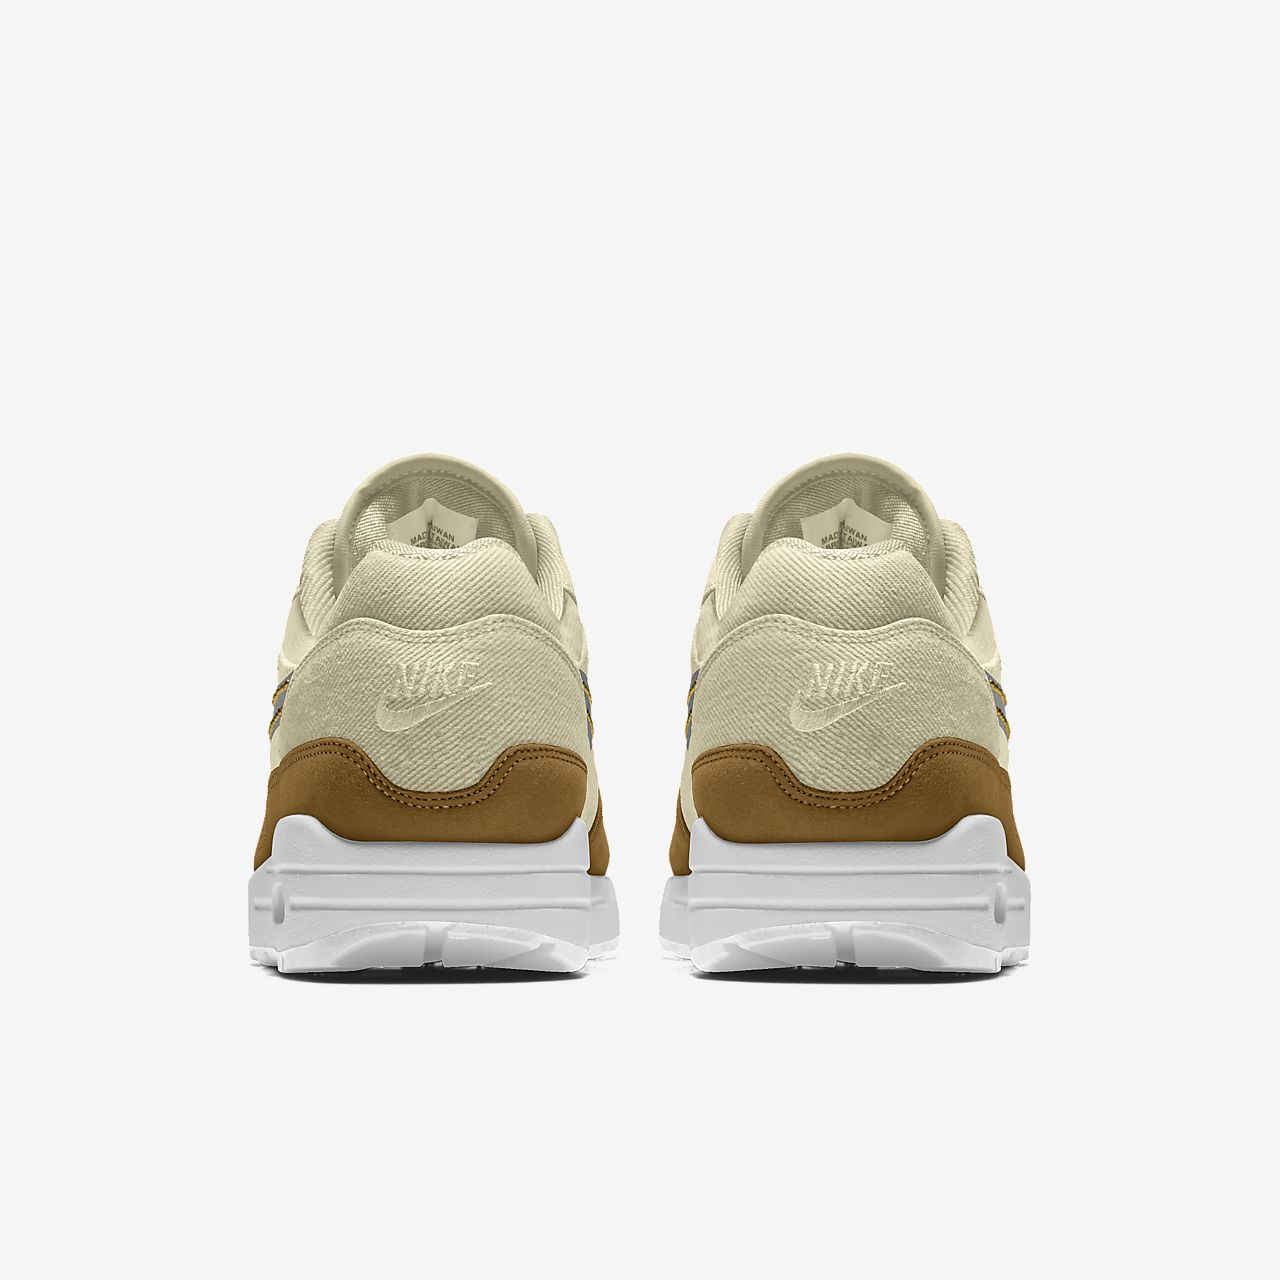 Chaussure personnalisable Nike Air Max 1 Premium By You pour Femme